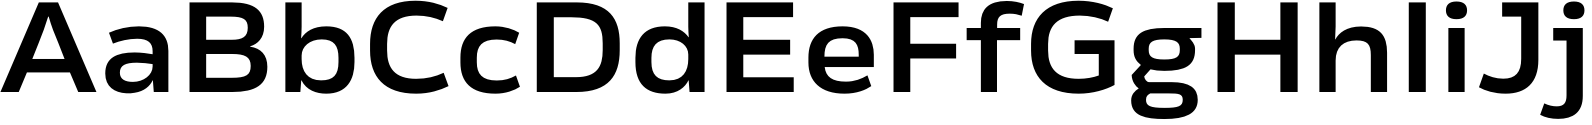 Rleud Extended Demi Font